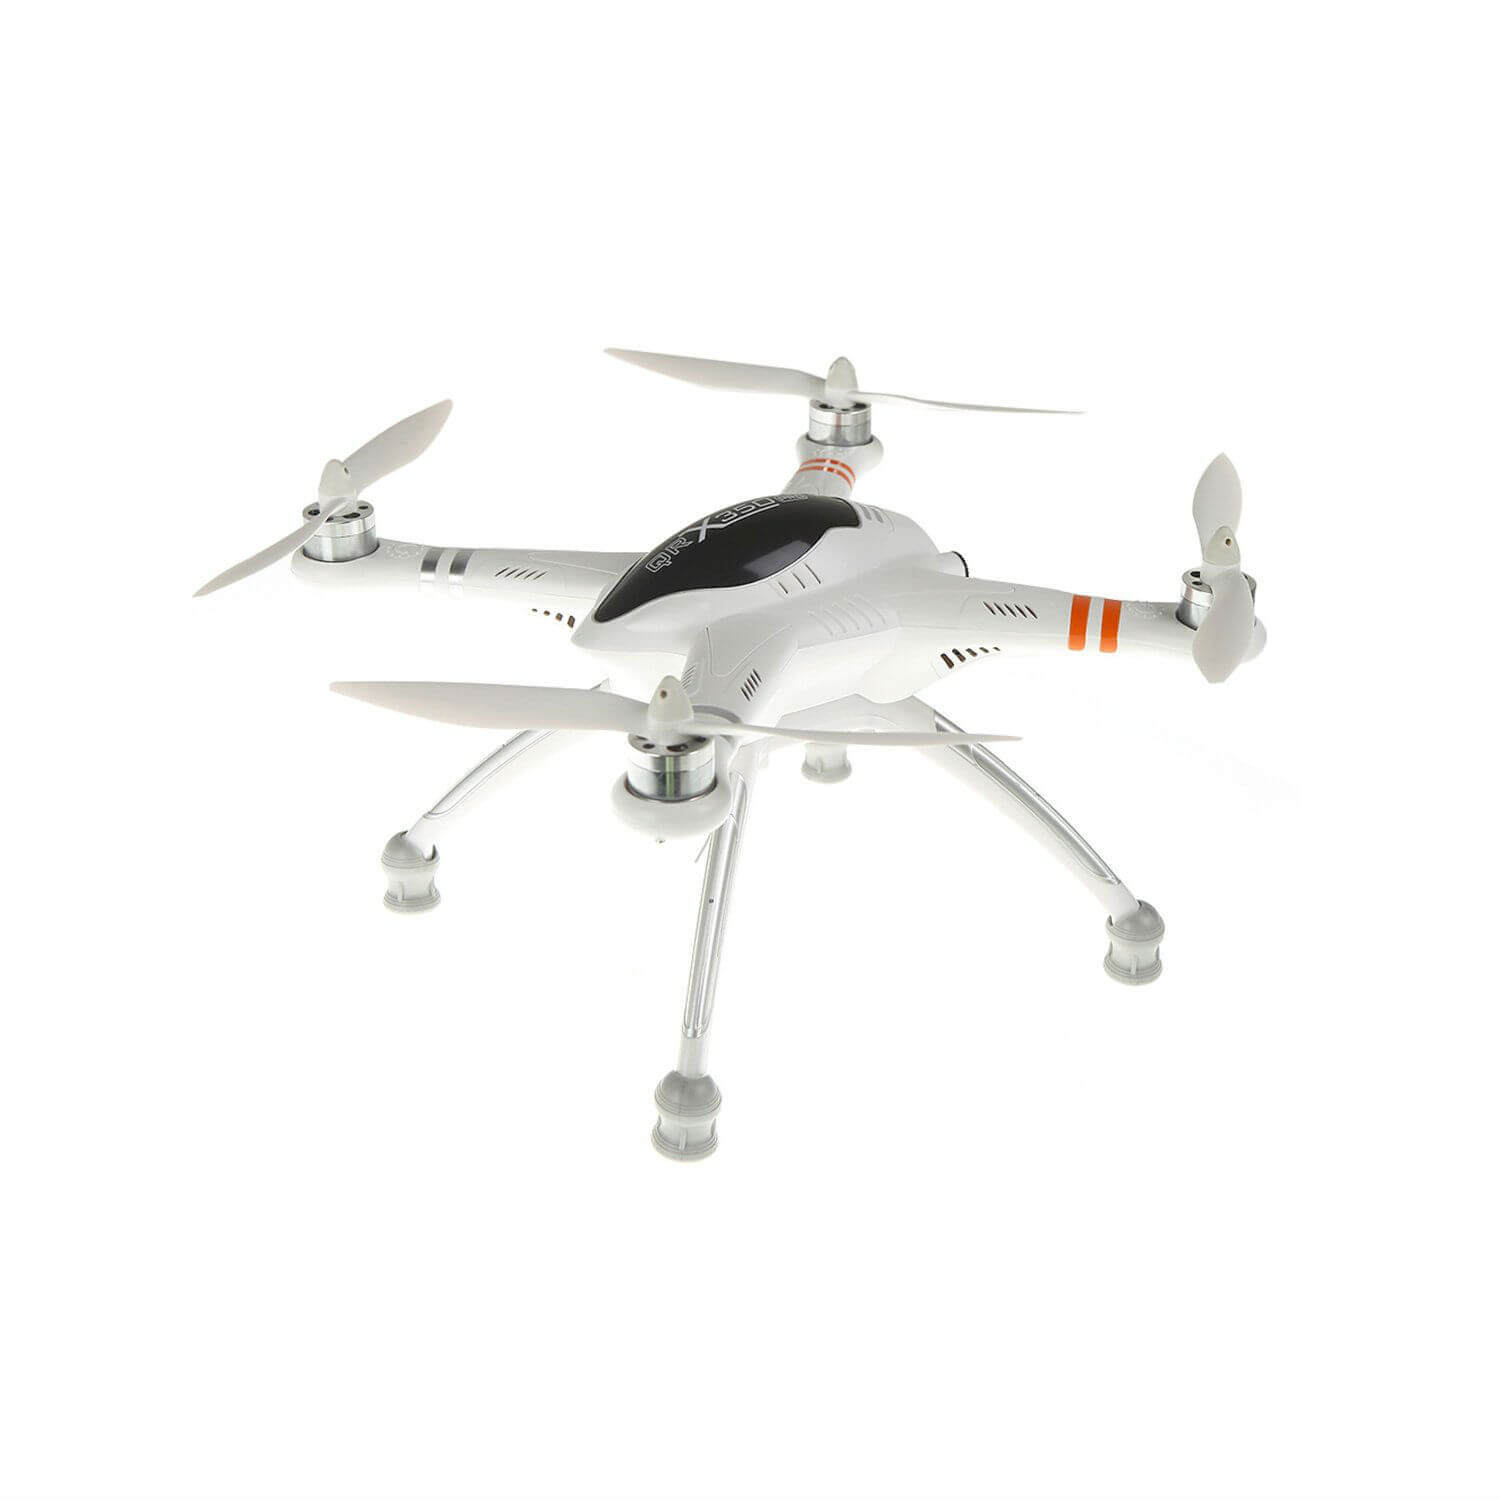 Walkera Quadrocopter